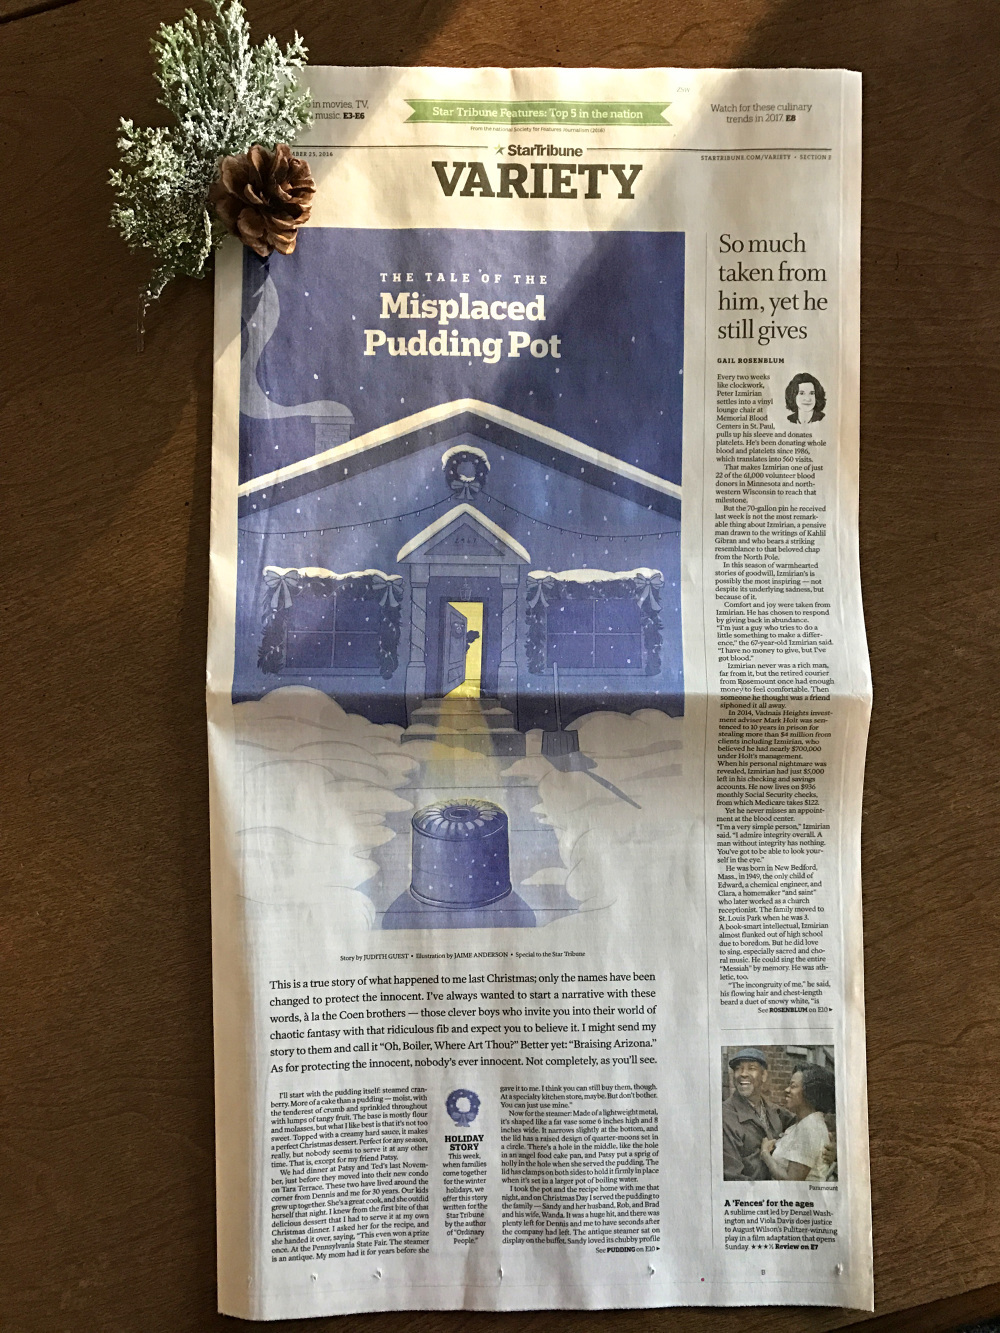 star tribune holiday essay jaime anderson illustration star tribune holiday essay the misplaced pudding pot